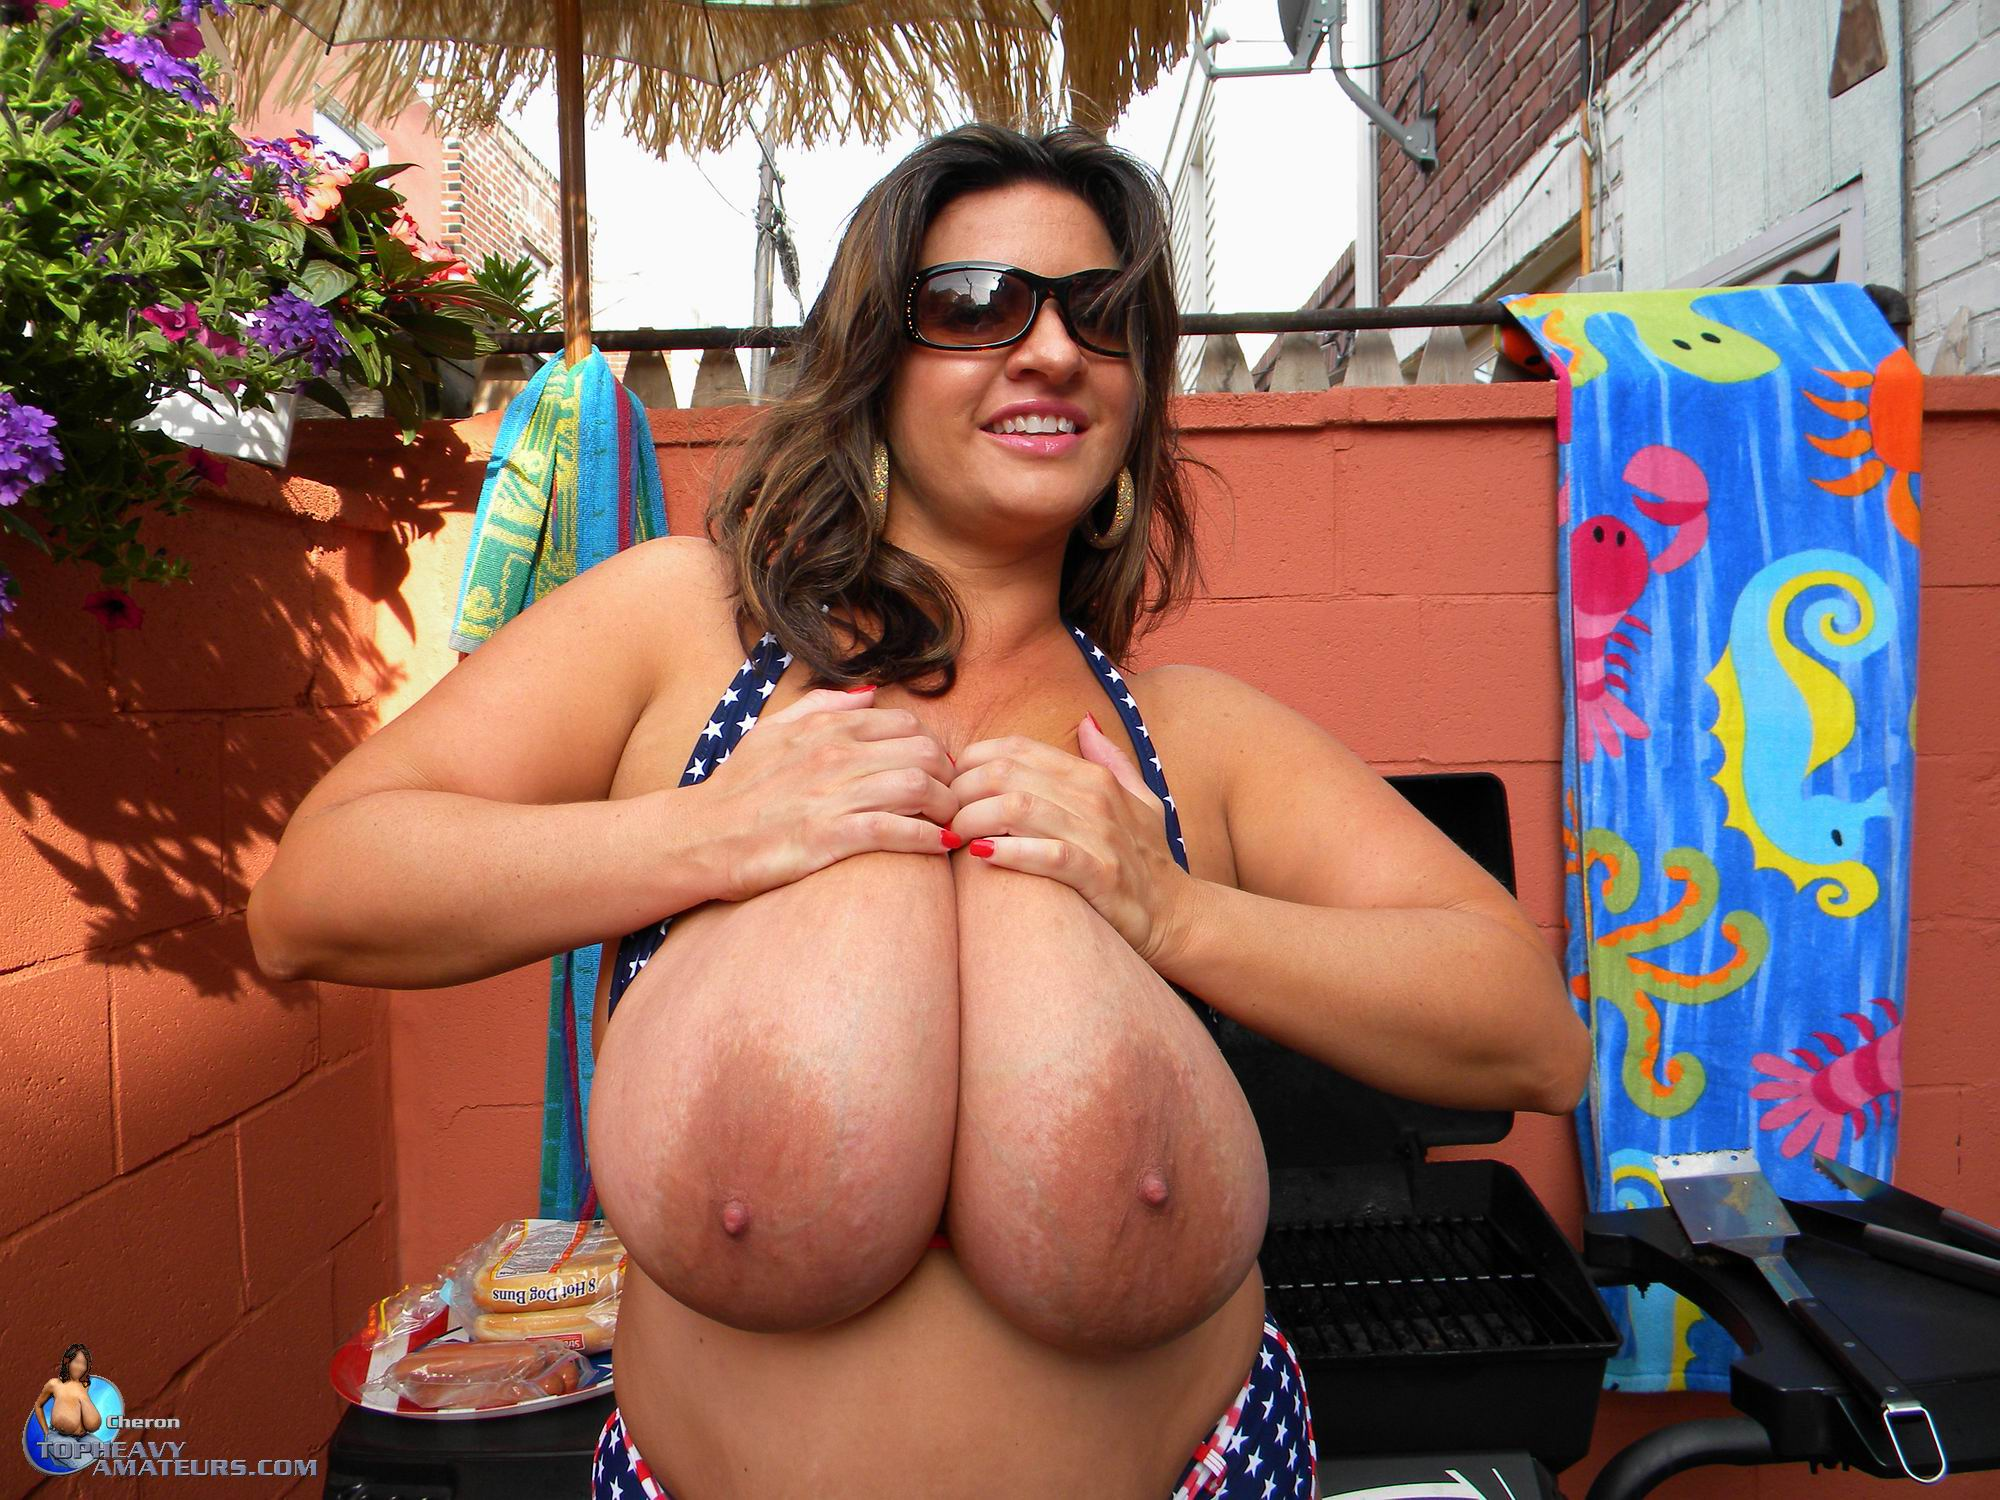 Huge boobs website-3788